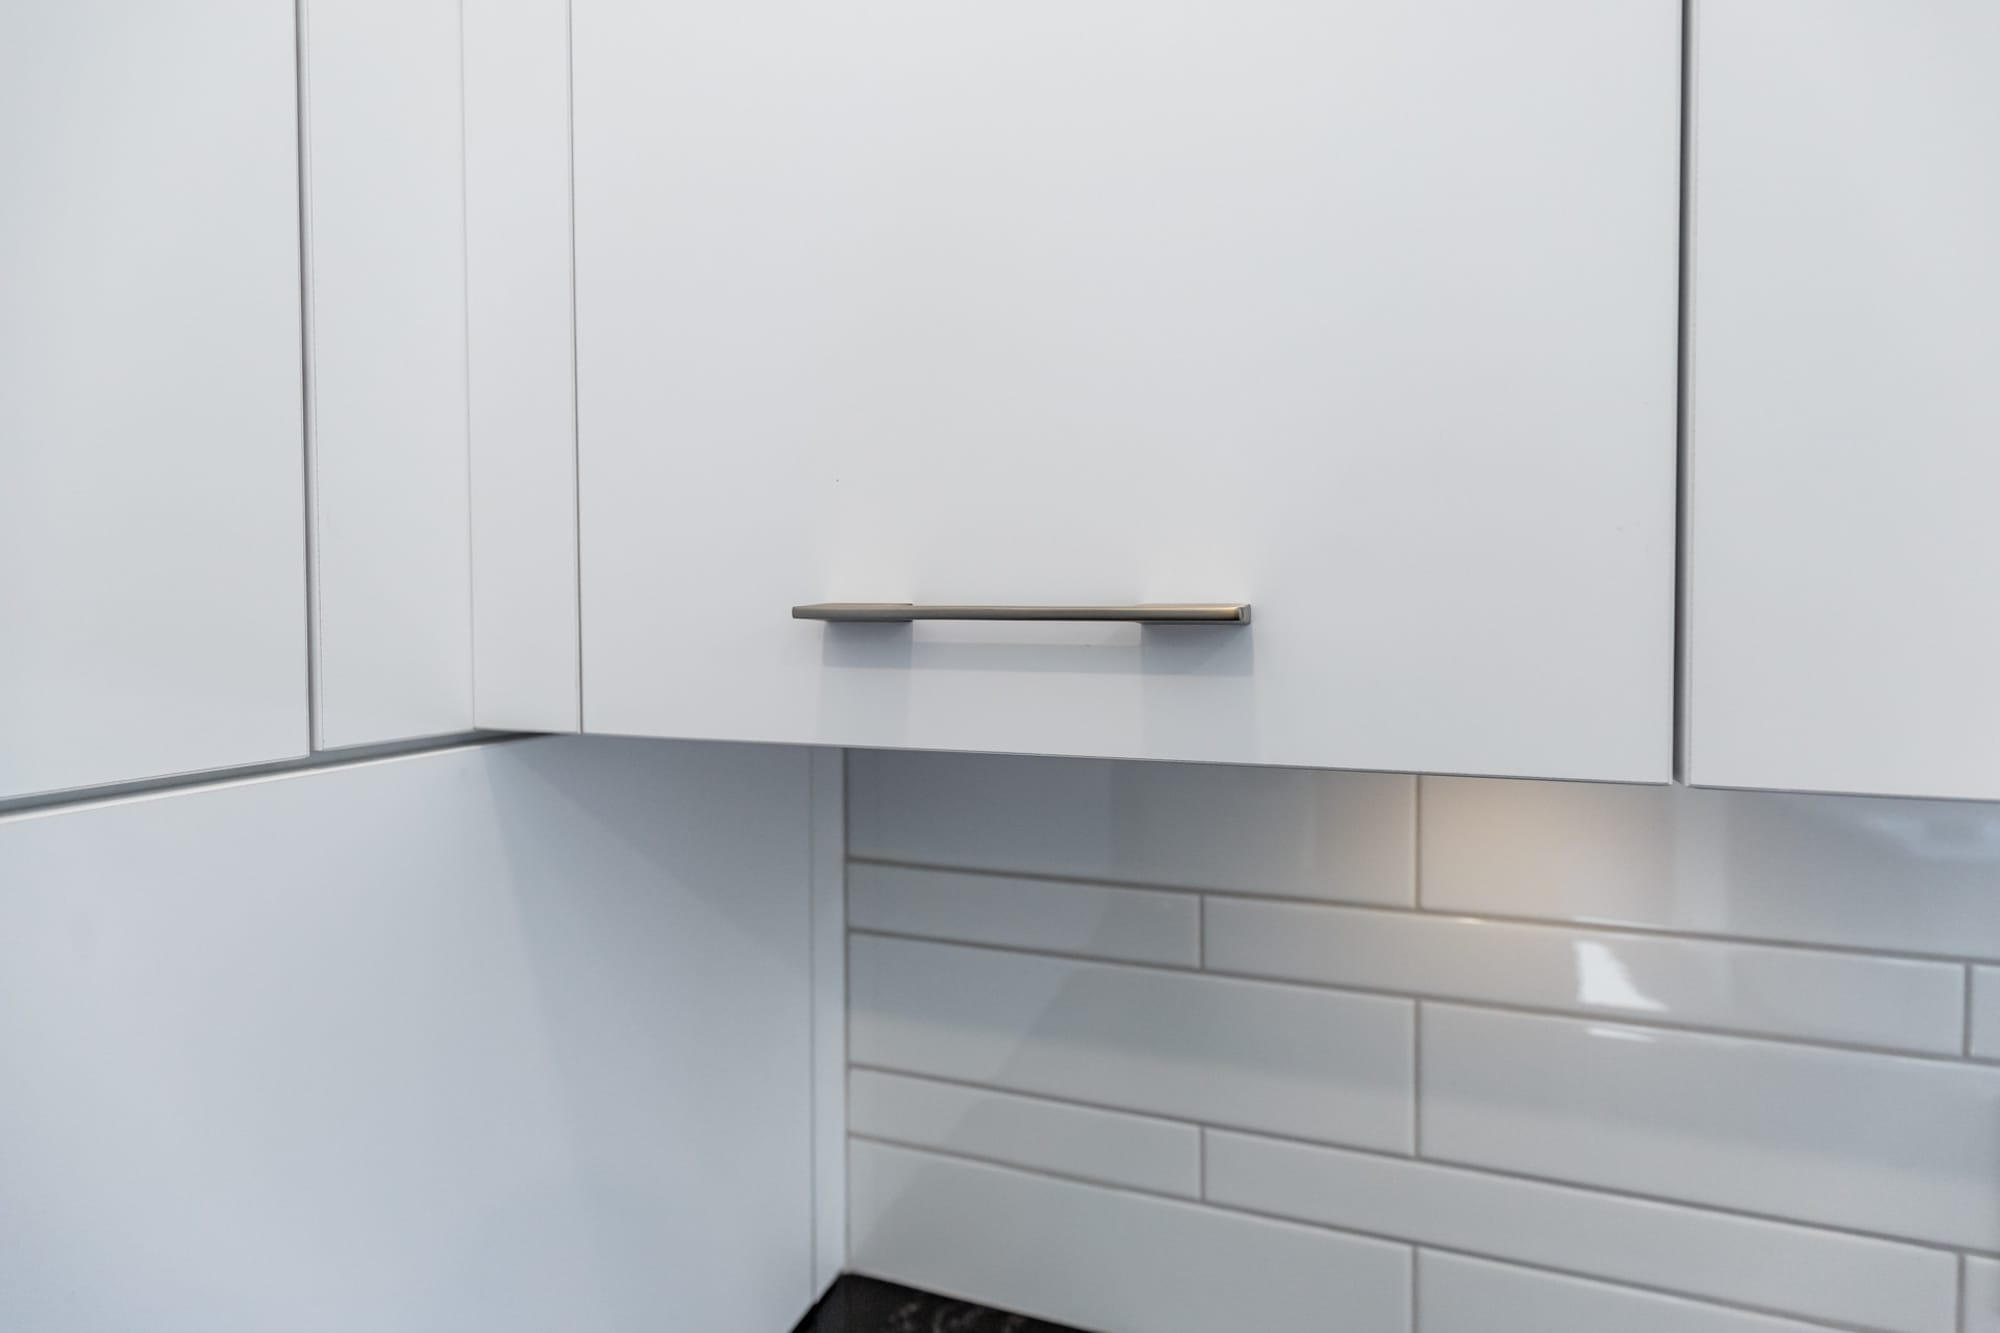 white melamine cabinets with a ceramic backsplash